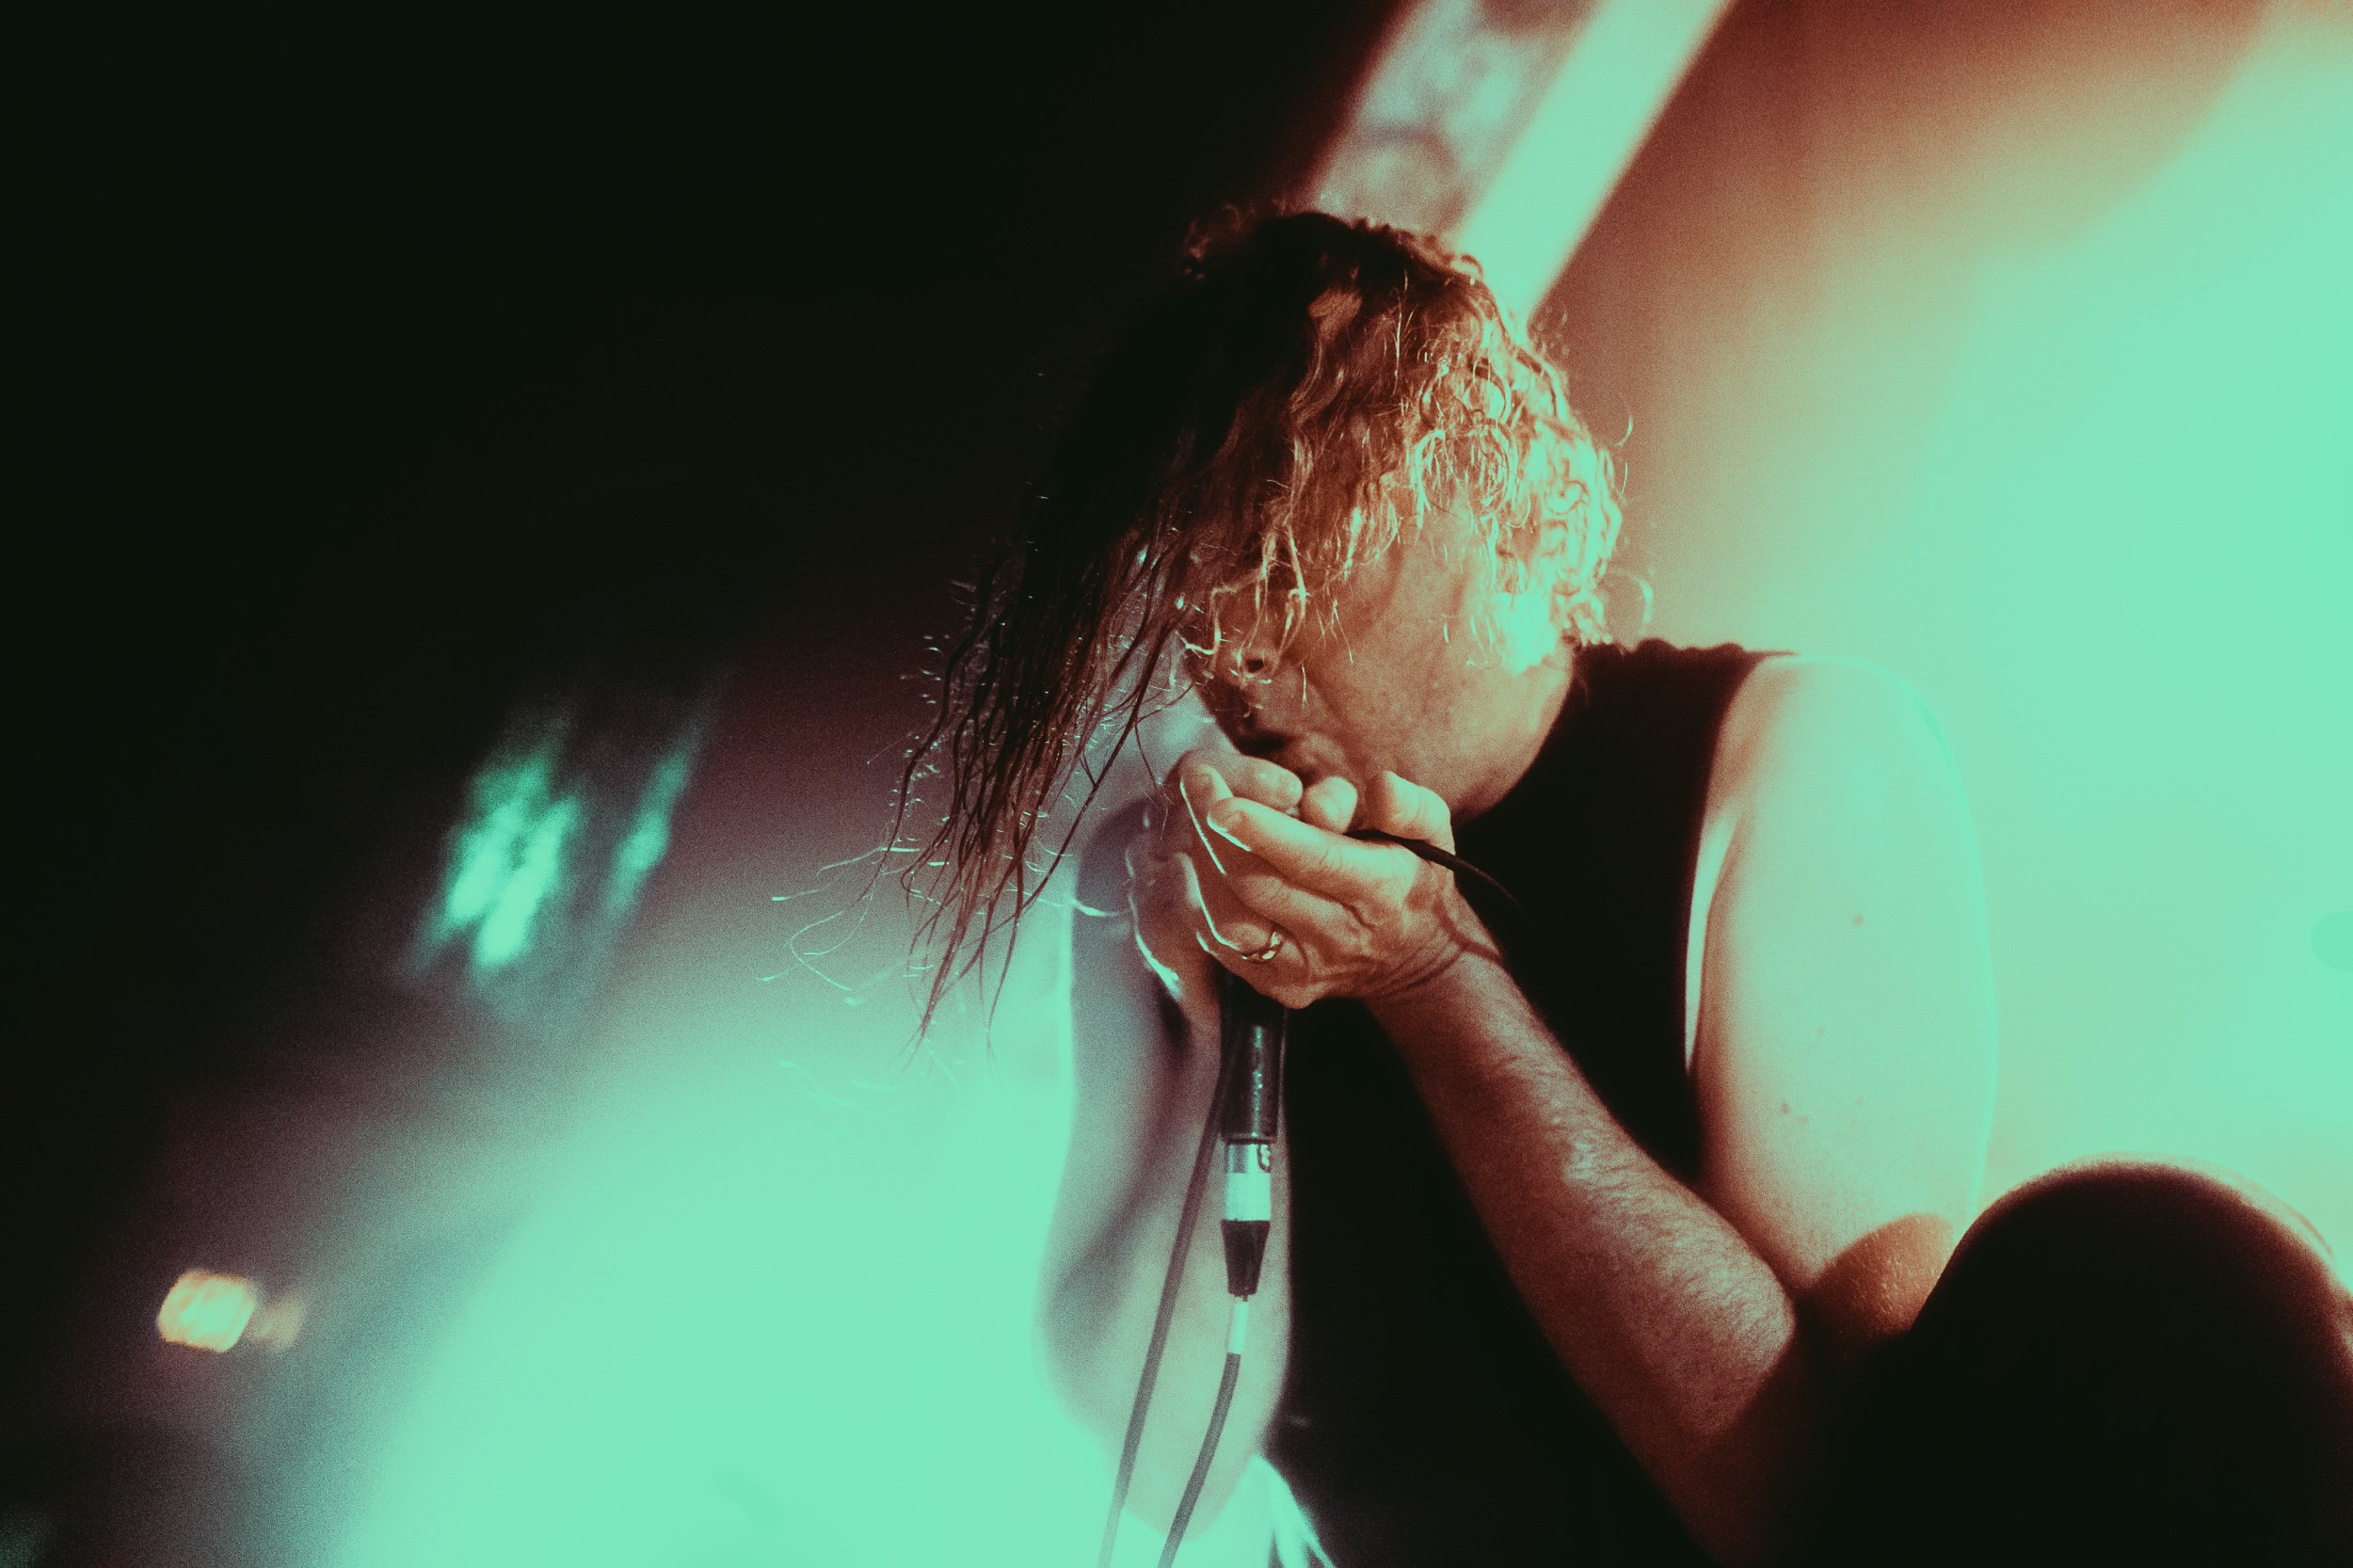 cattle decapitation 07.28.19-8.jpeg